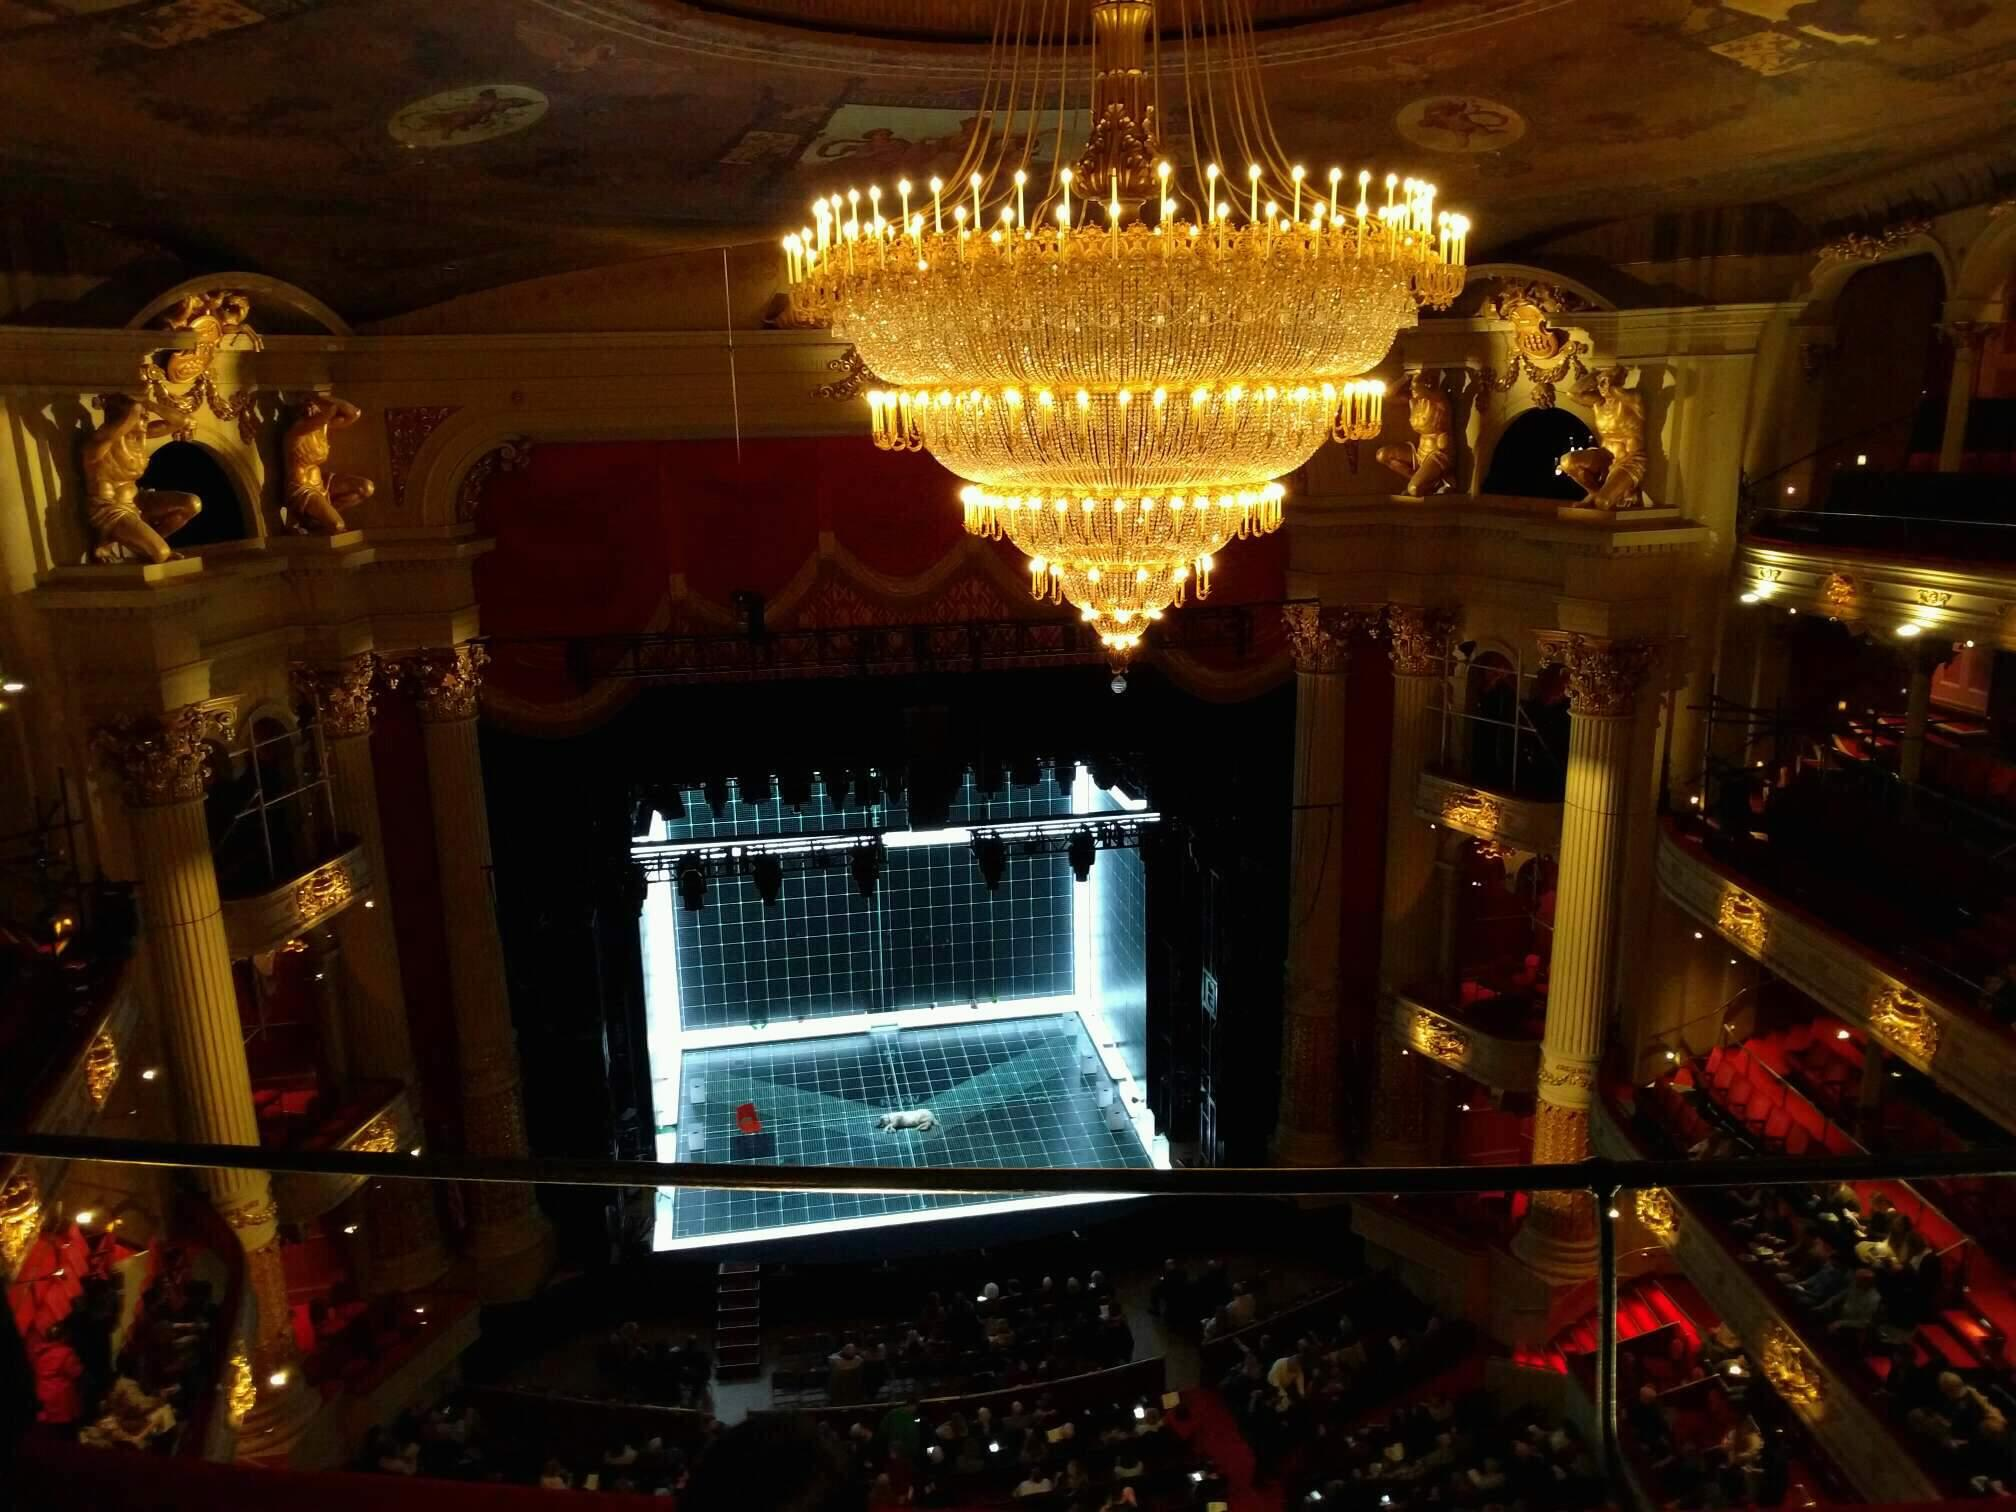 Academy of Music Section Amphitheater E Row c Seat 114